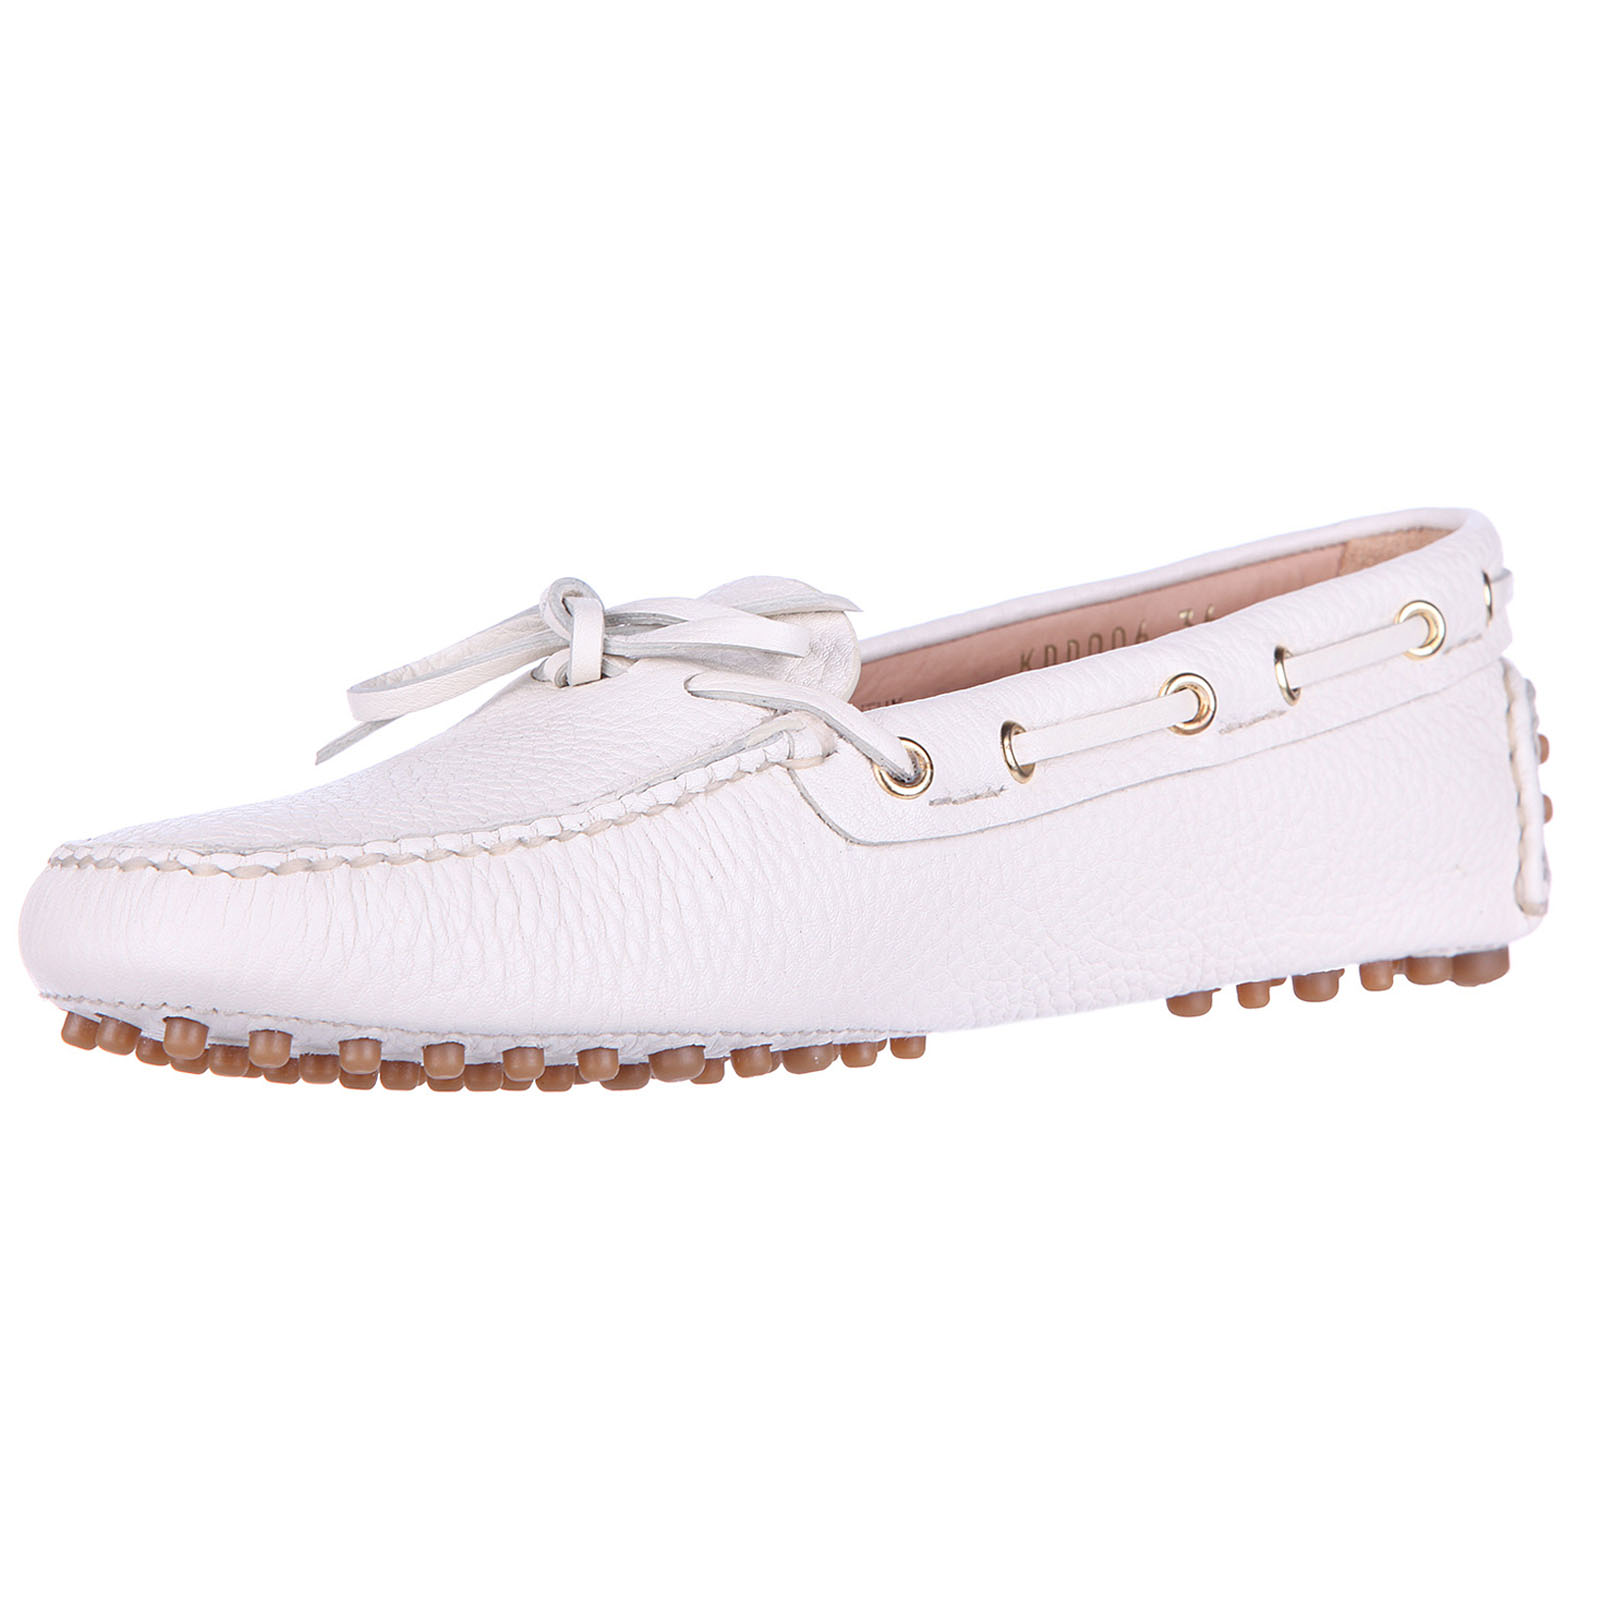 Women's leather loafers moccasins